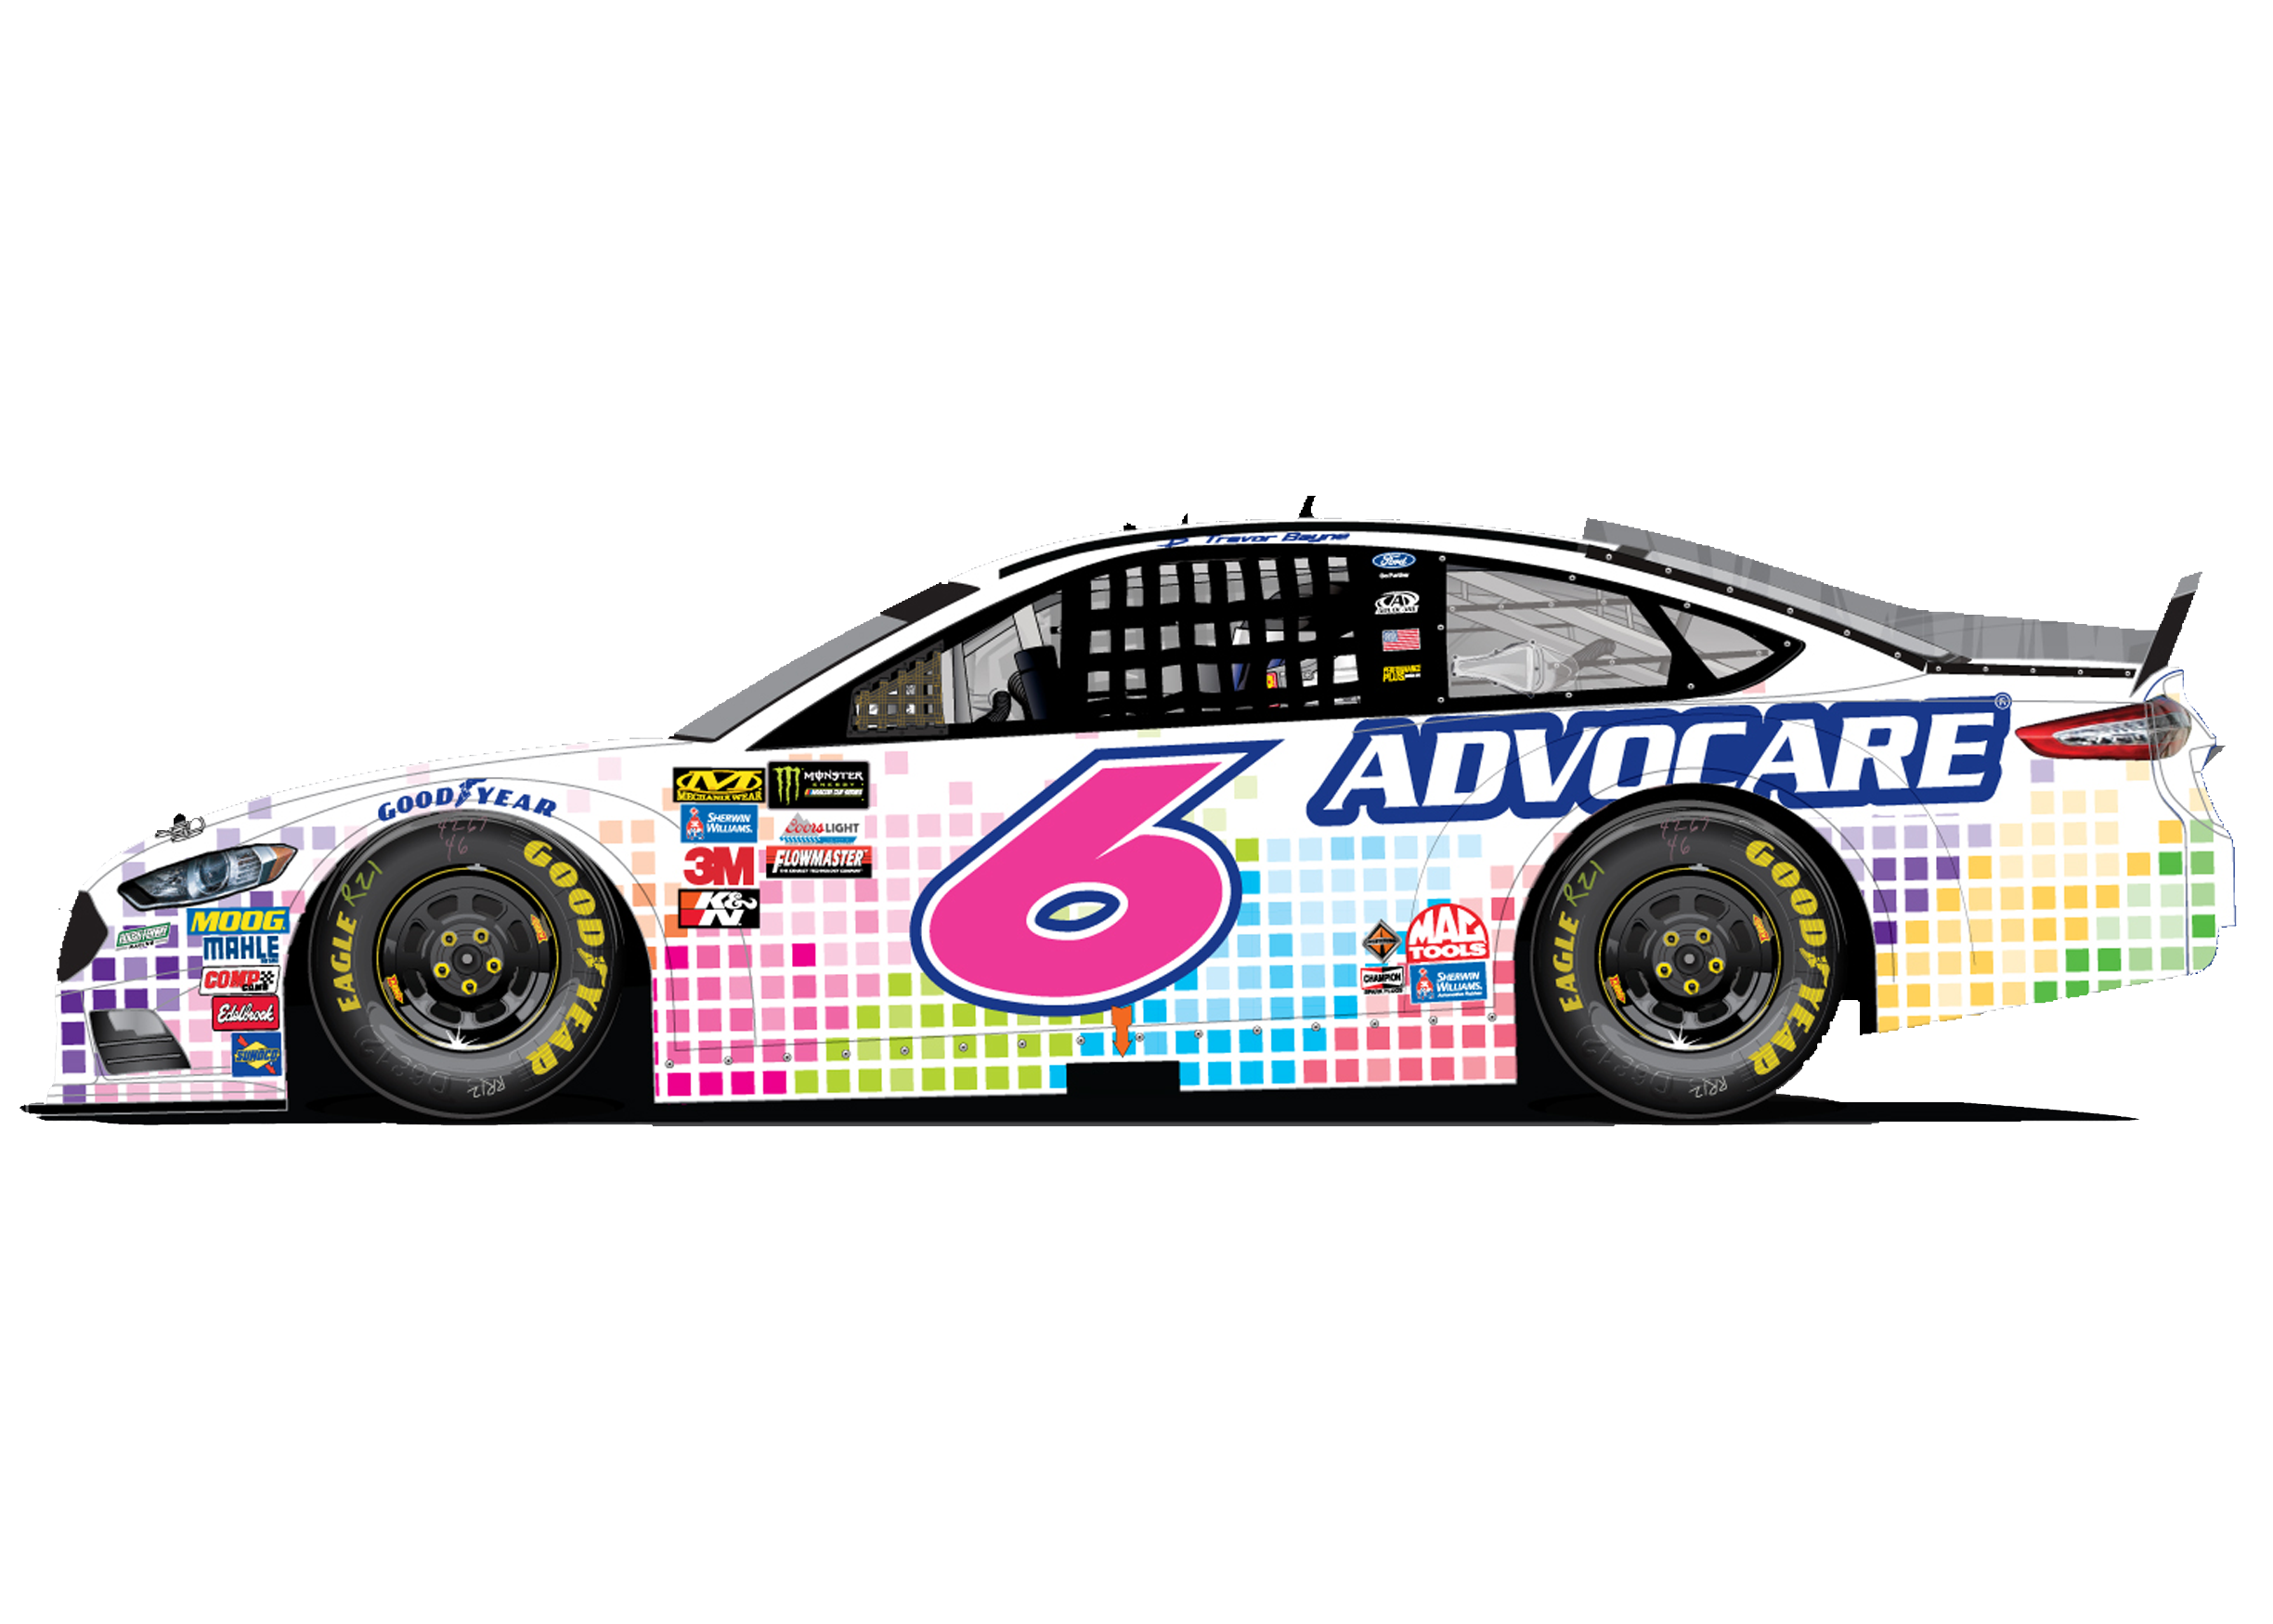 Roush Fenway Racing Driven for a Cause carrying pink numbers in